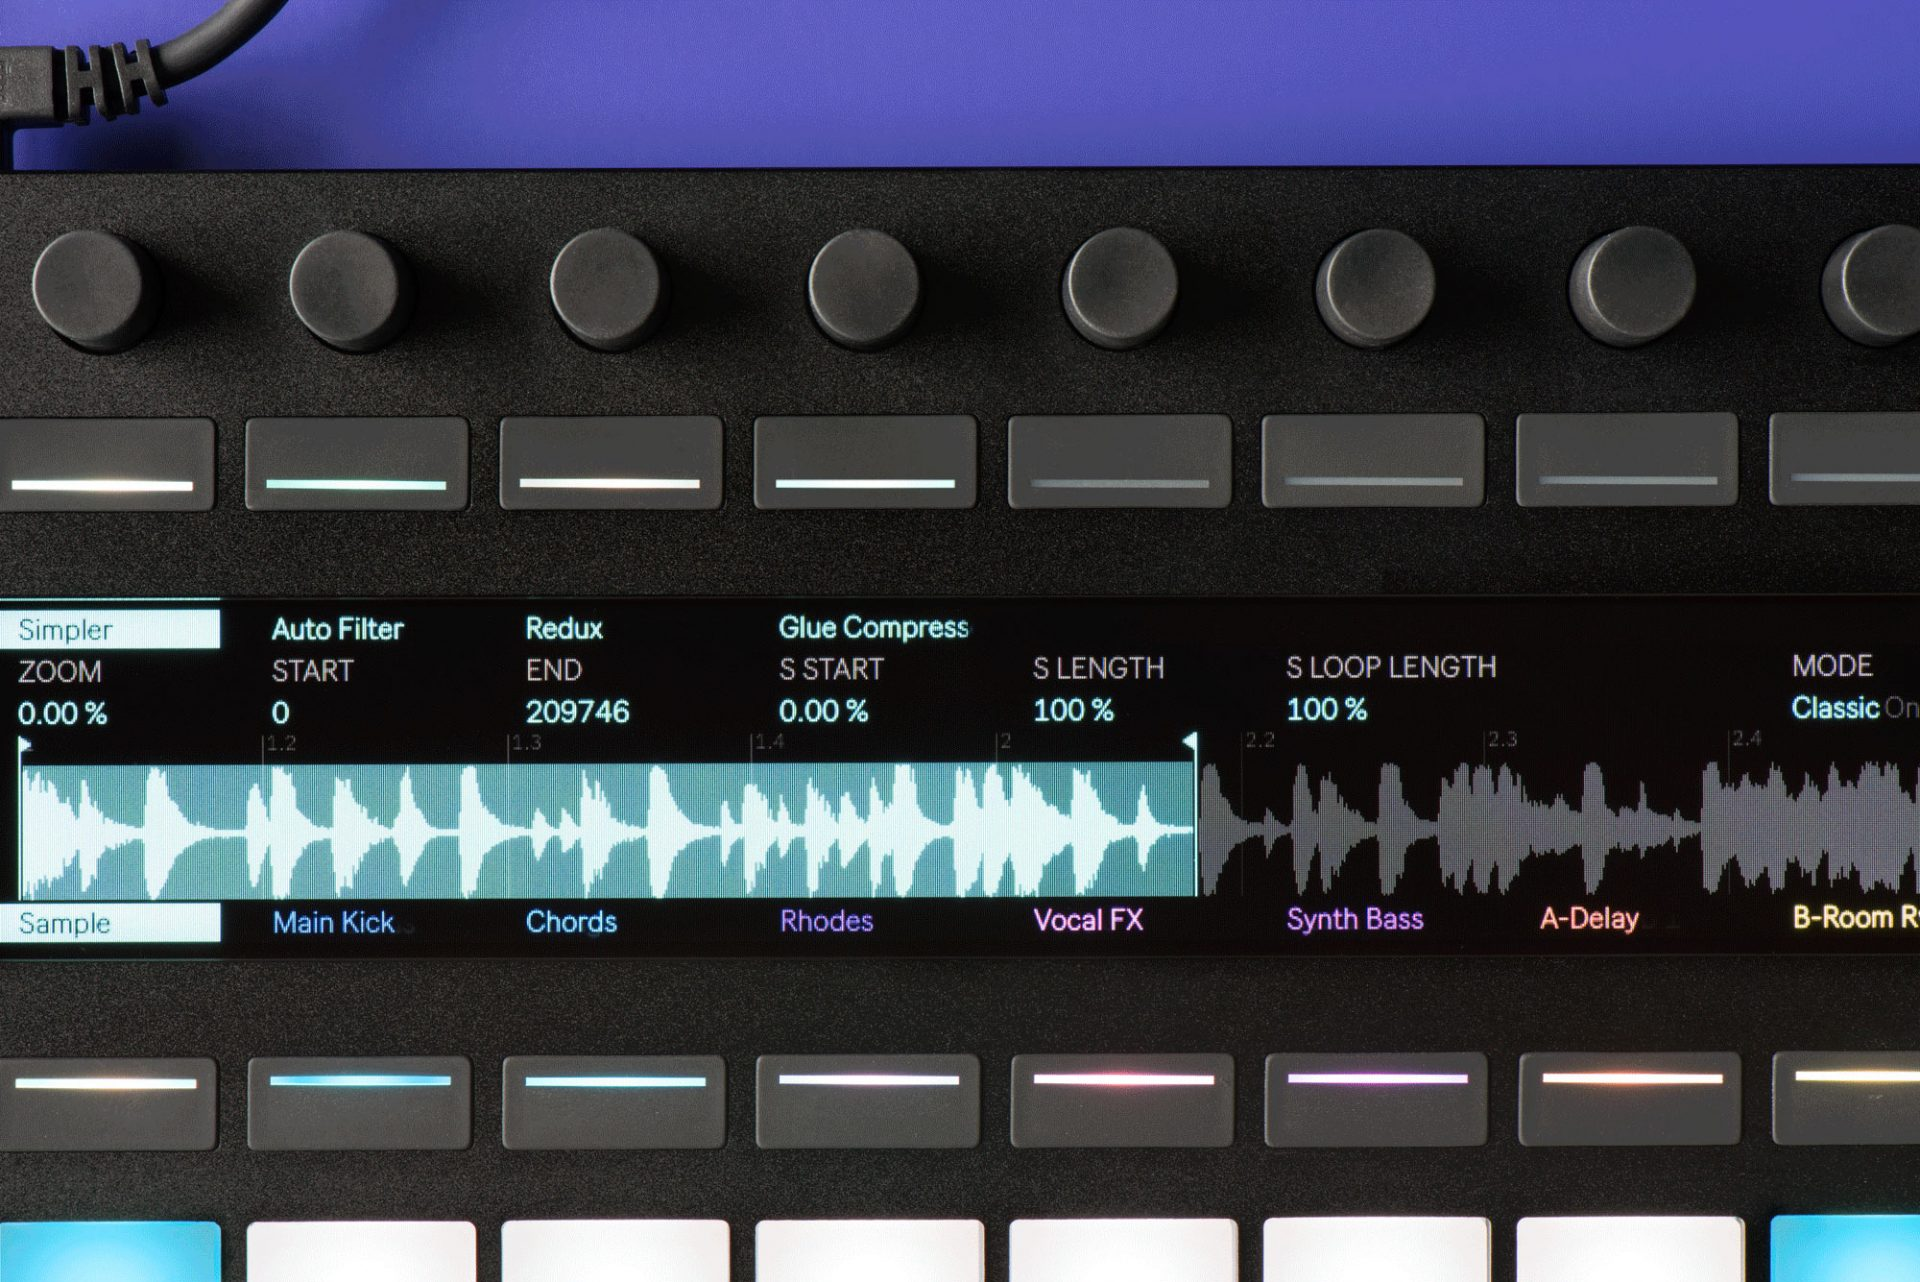 This typeface was developed solely for use in Ableton's physical and digital interfaces.